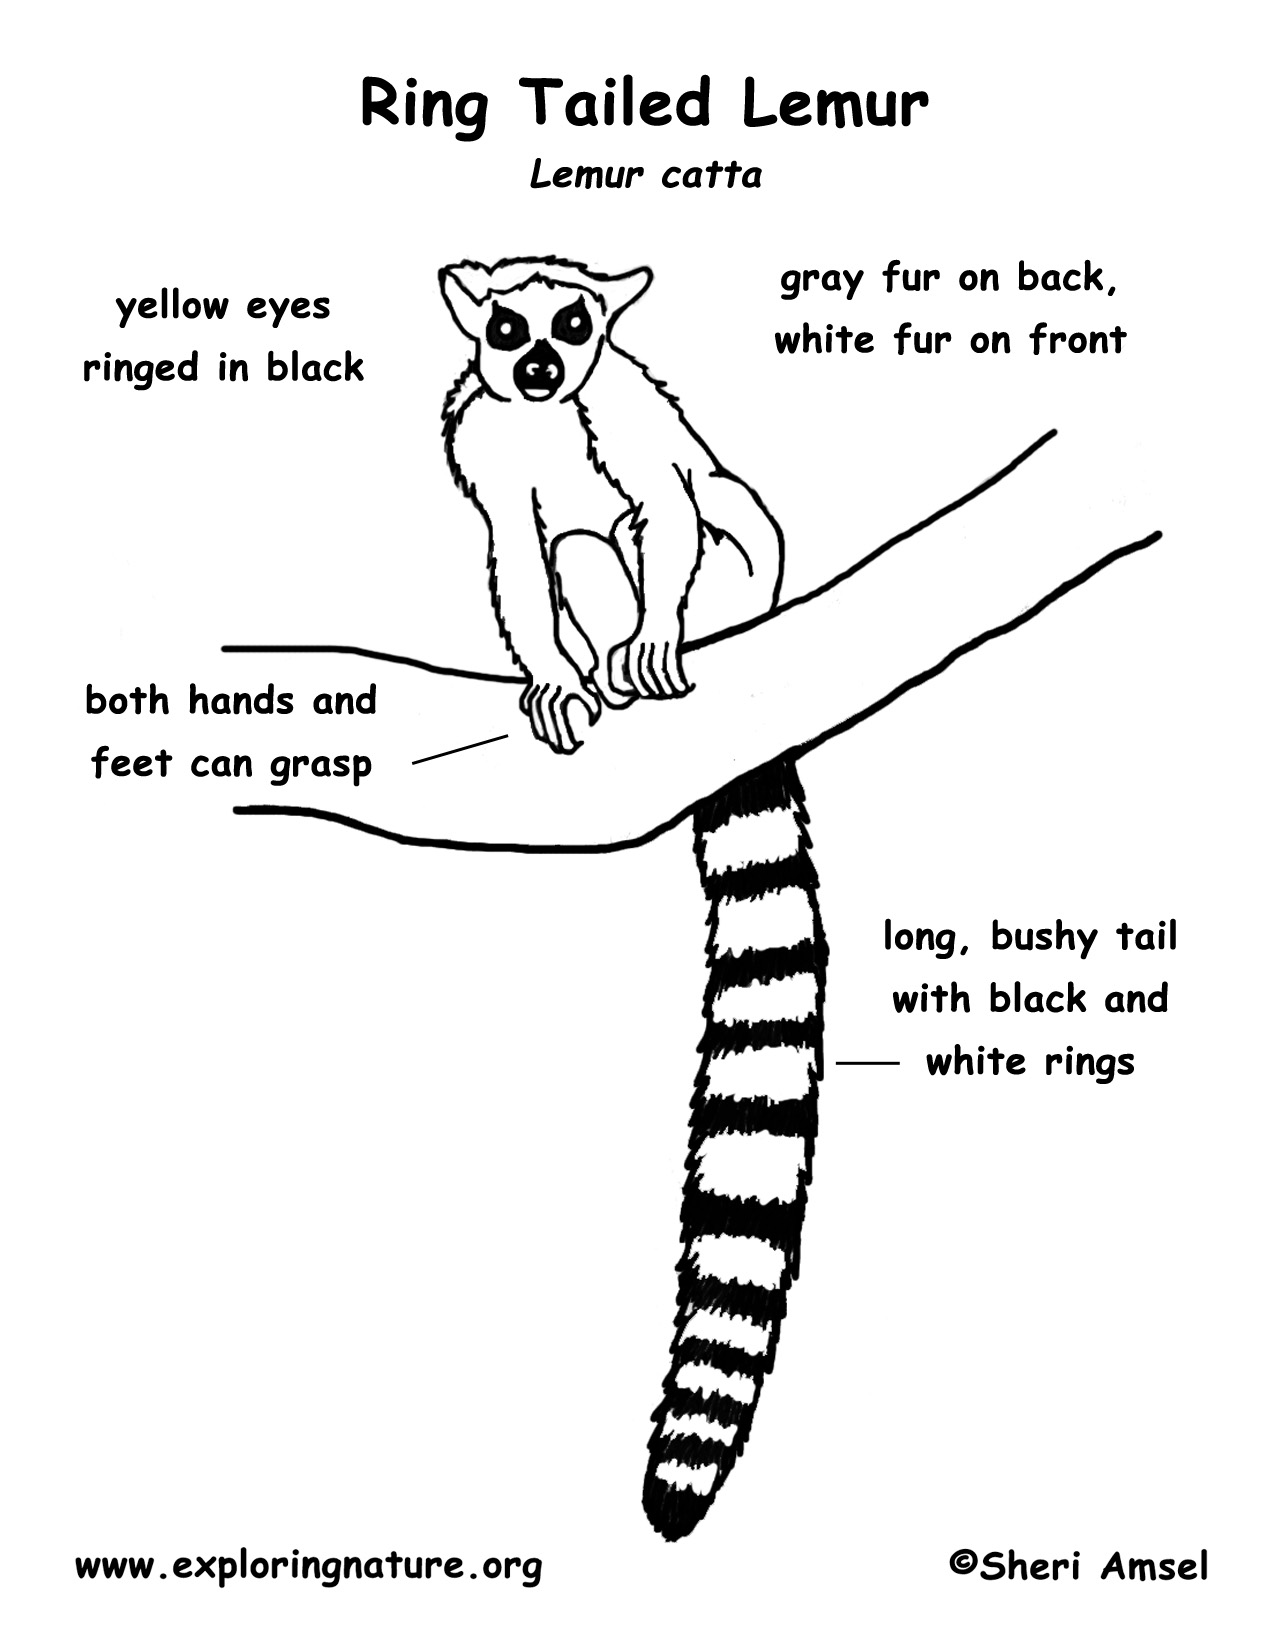 Lemur Ring Tailed